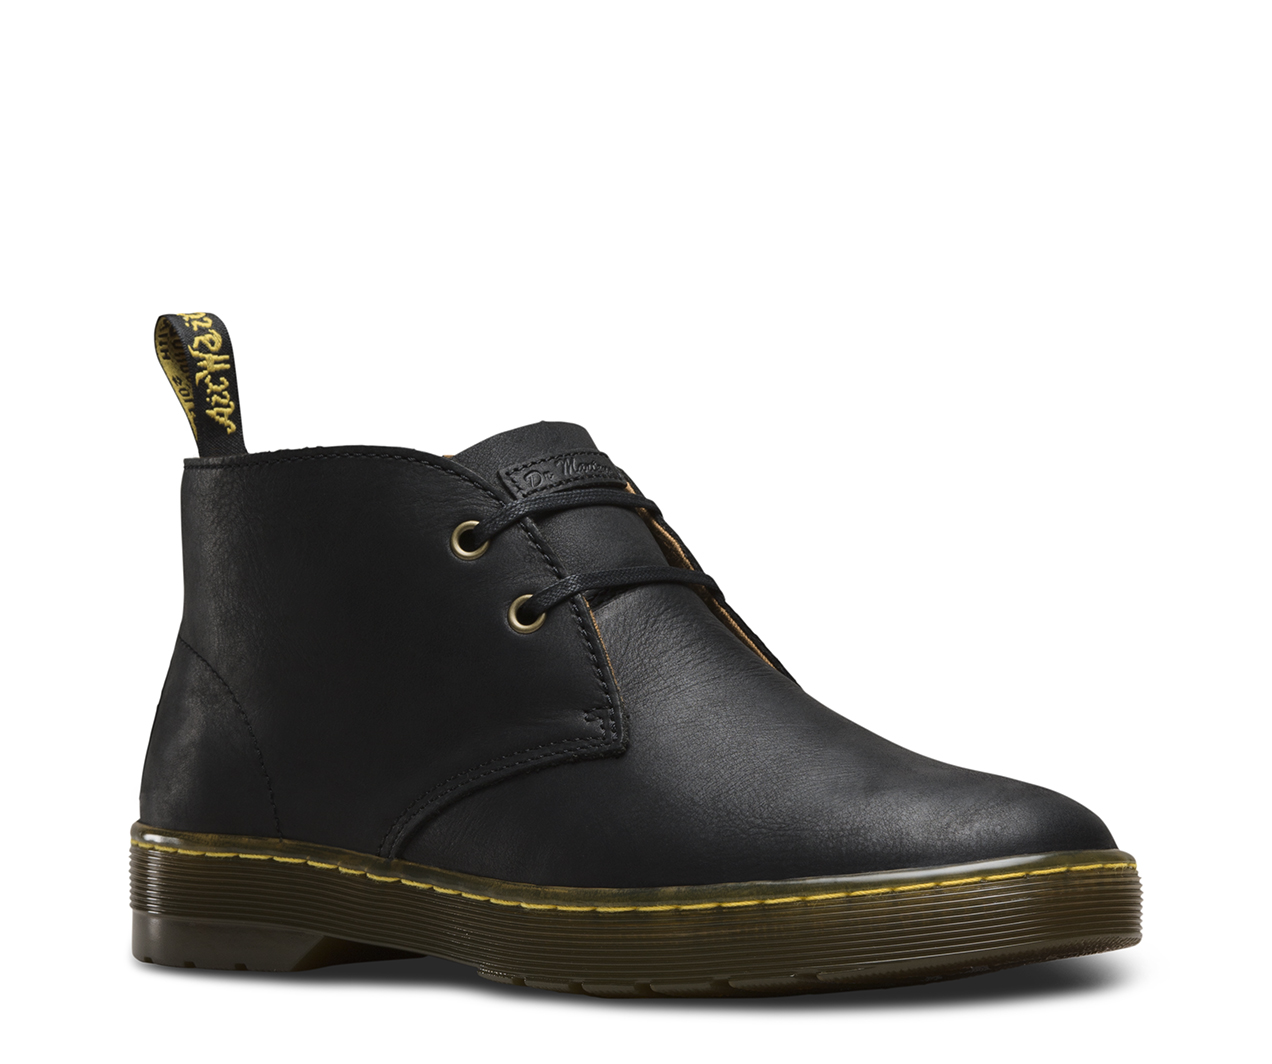 Cabrillo Wyoming Wyoming Leather Boots The Official Us